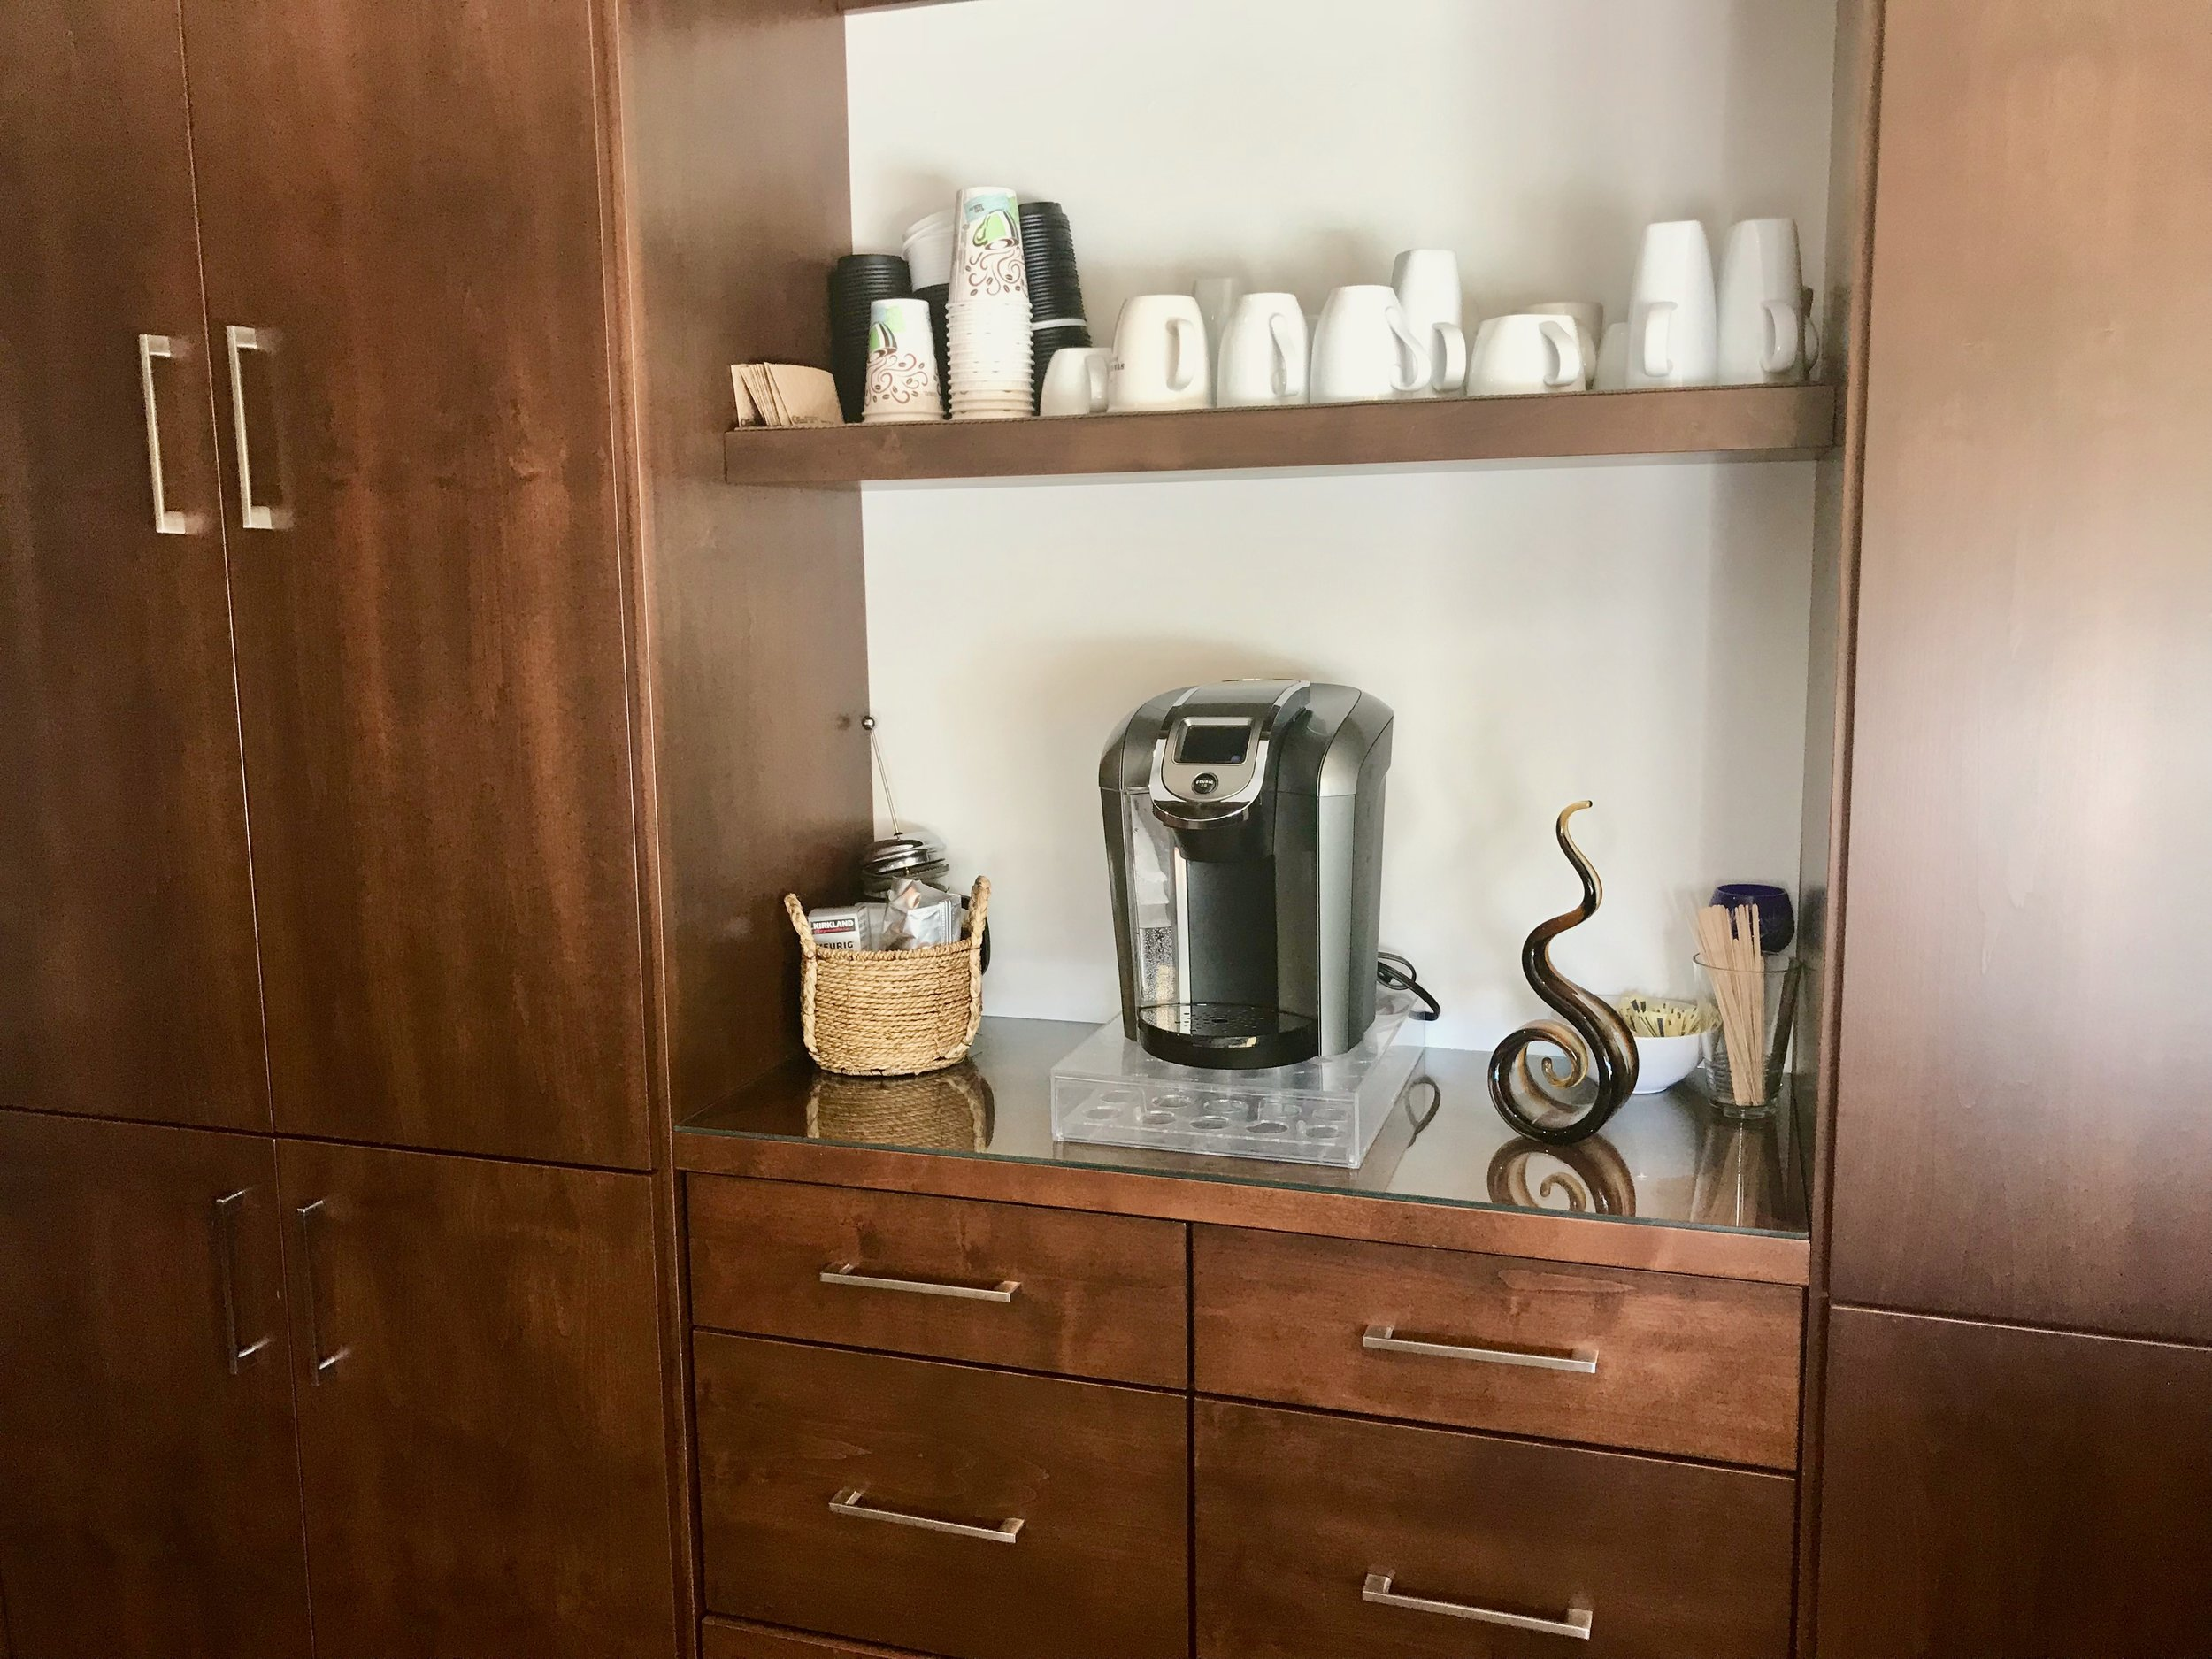 Coffee bar with Keurig brewer - piping hot coffee all at the touch of a button!